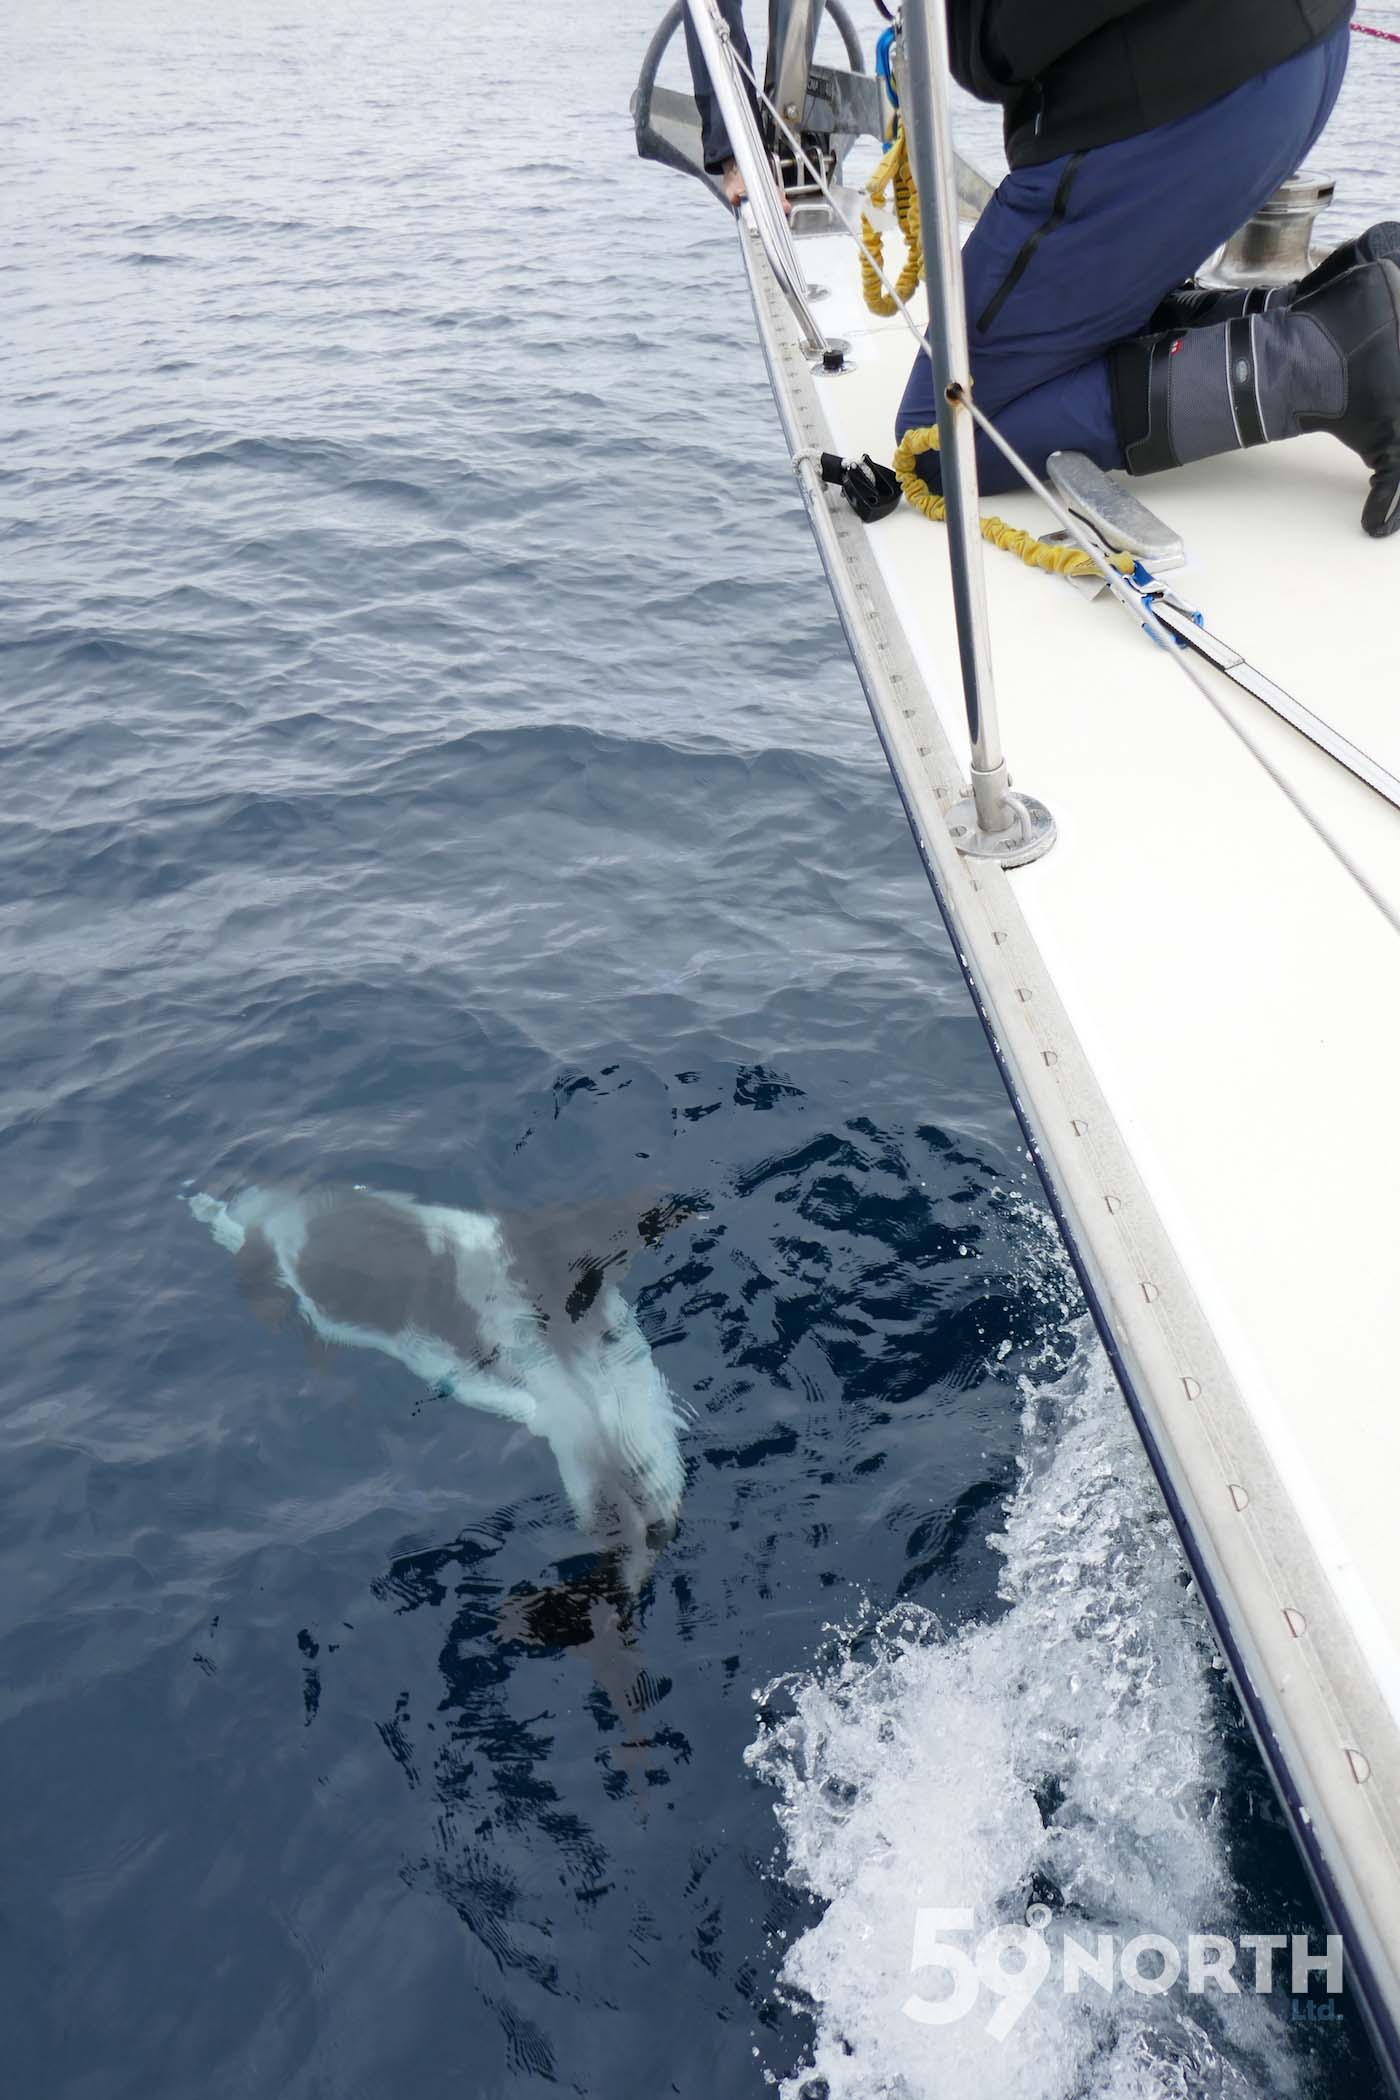 North Sea dolphins jumping alongside Isbjorn!  Leg 8, 2017: Sweden to Scotland 59-north.com